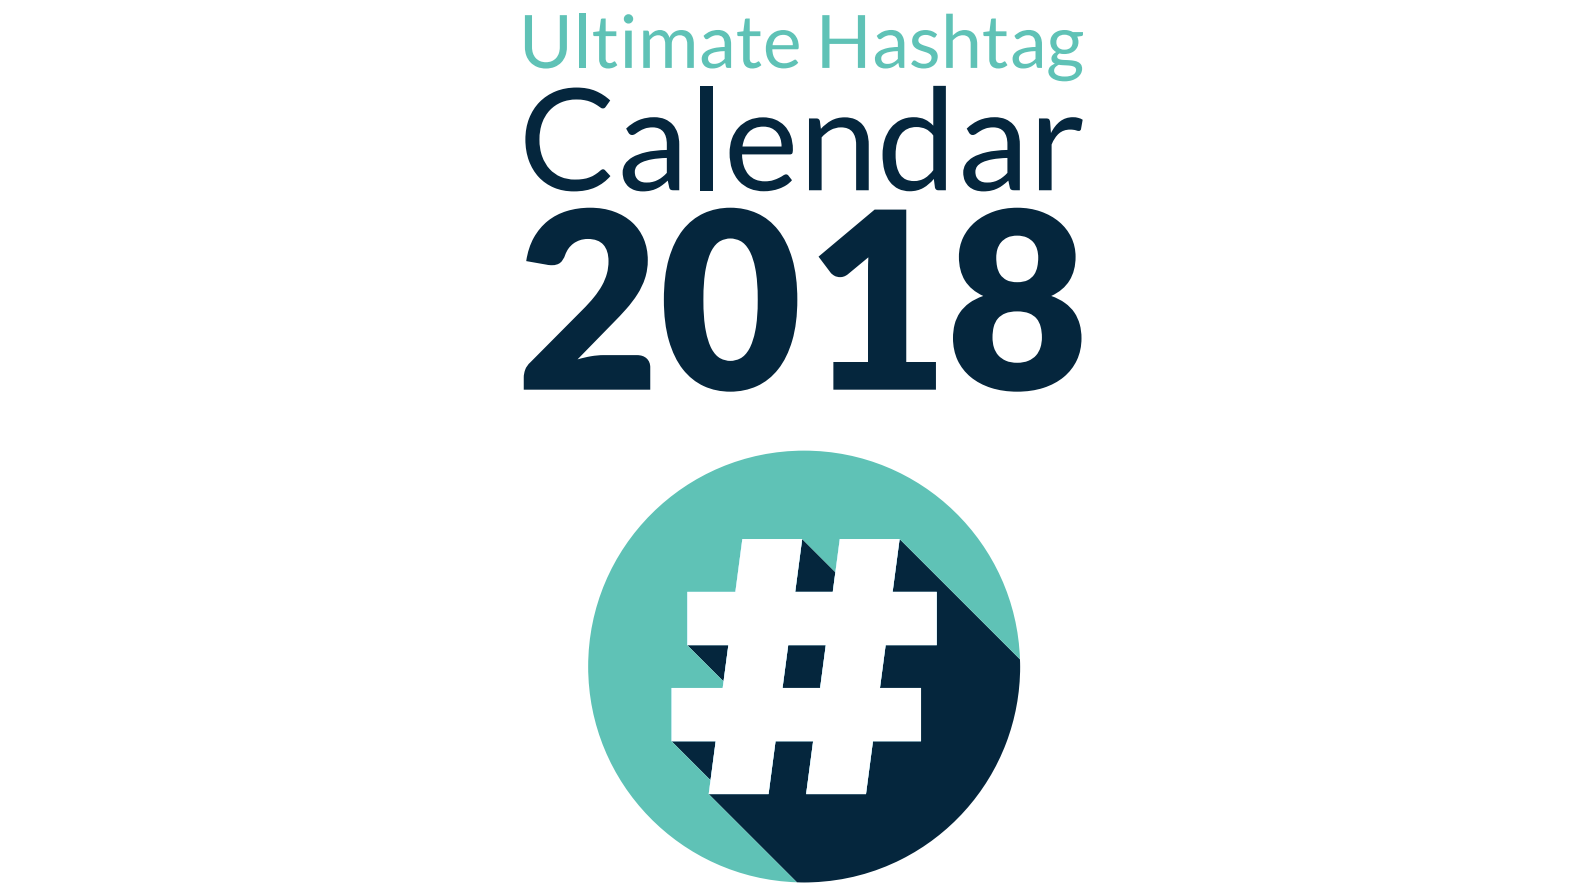 2018 social media hashtag calendar sparrow digital